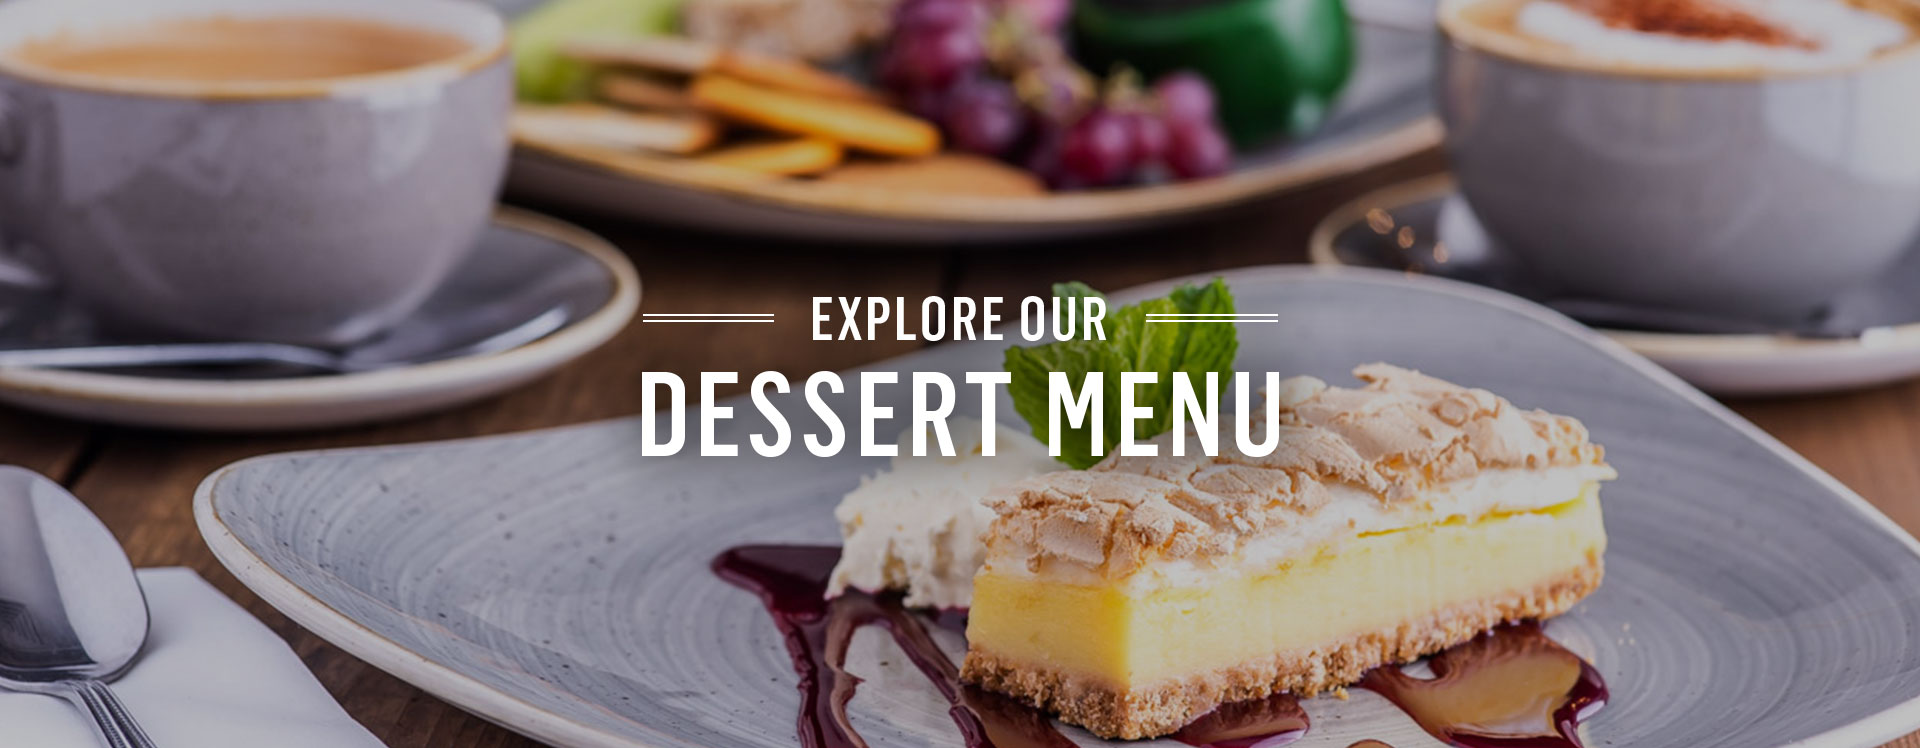 Dessert menu at The Feathers - Book a table